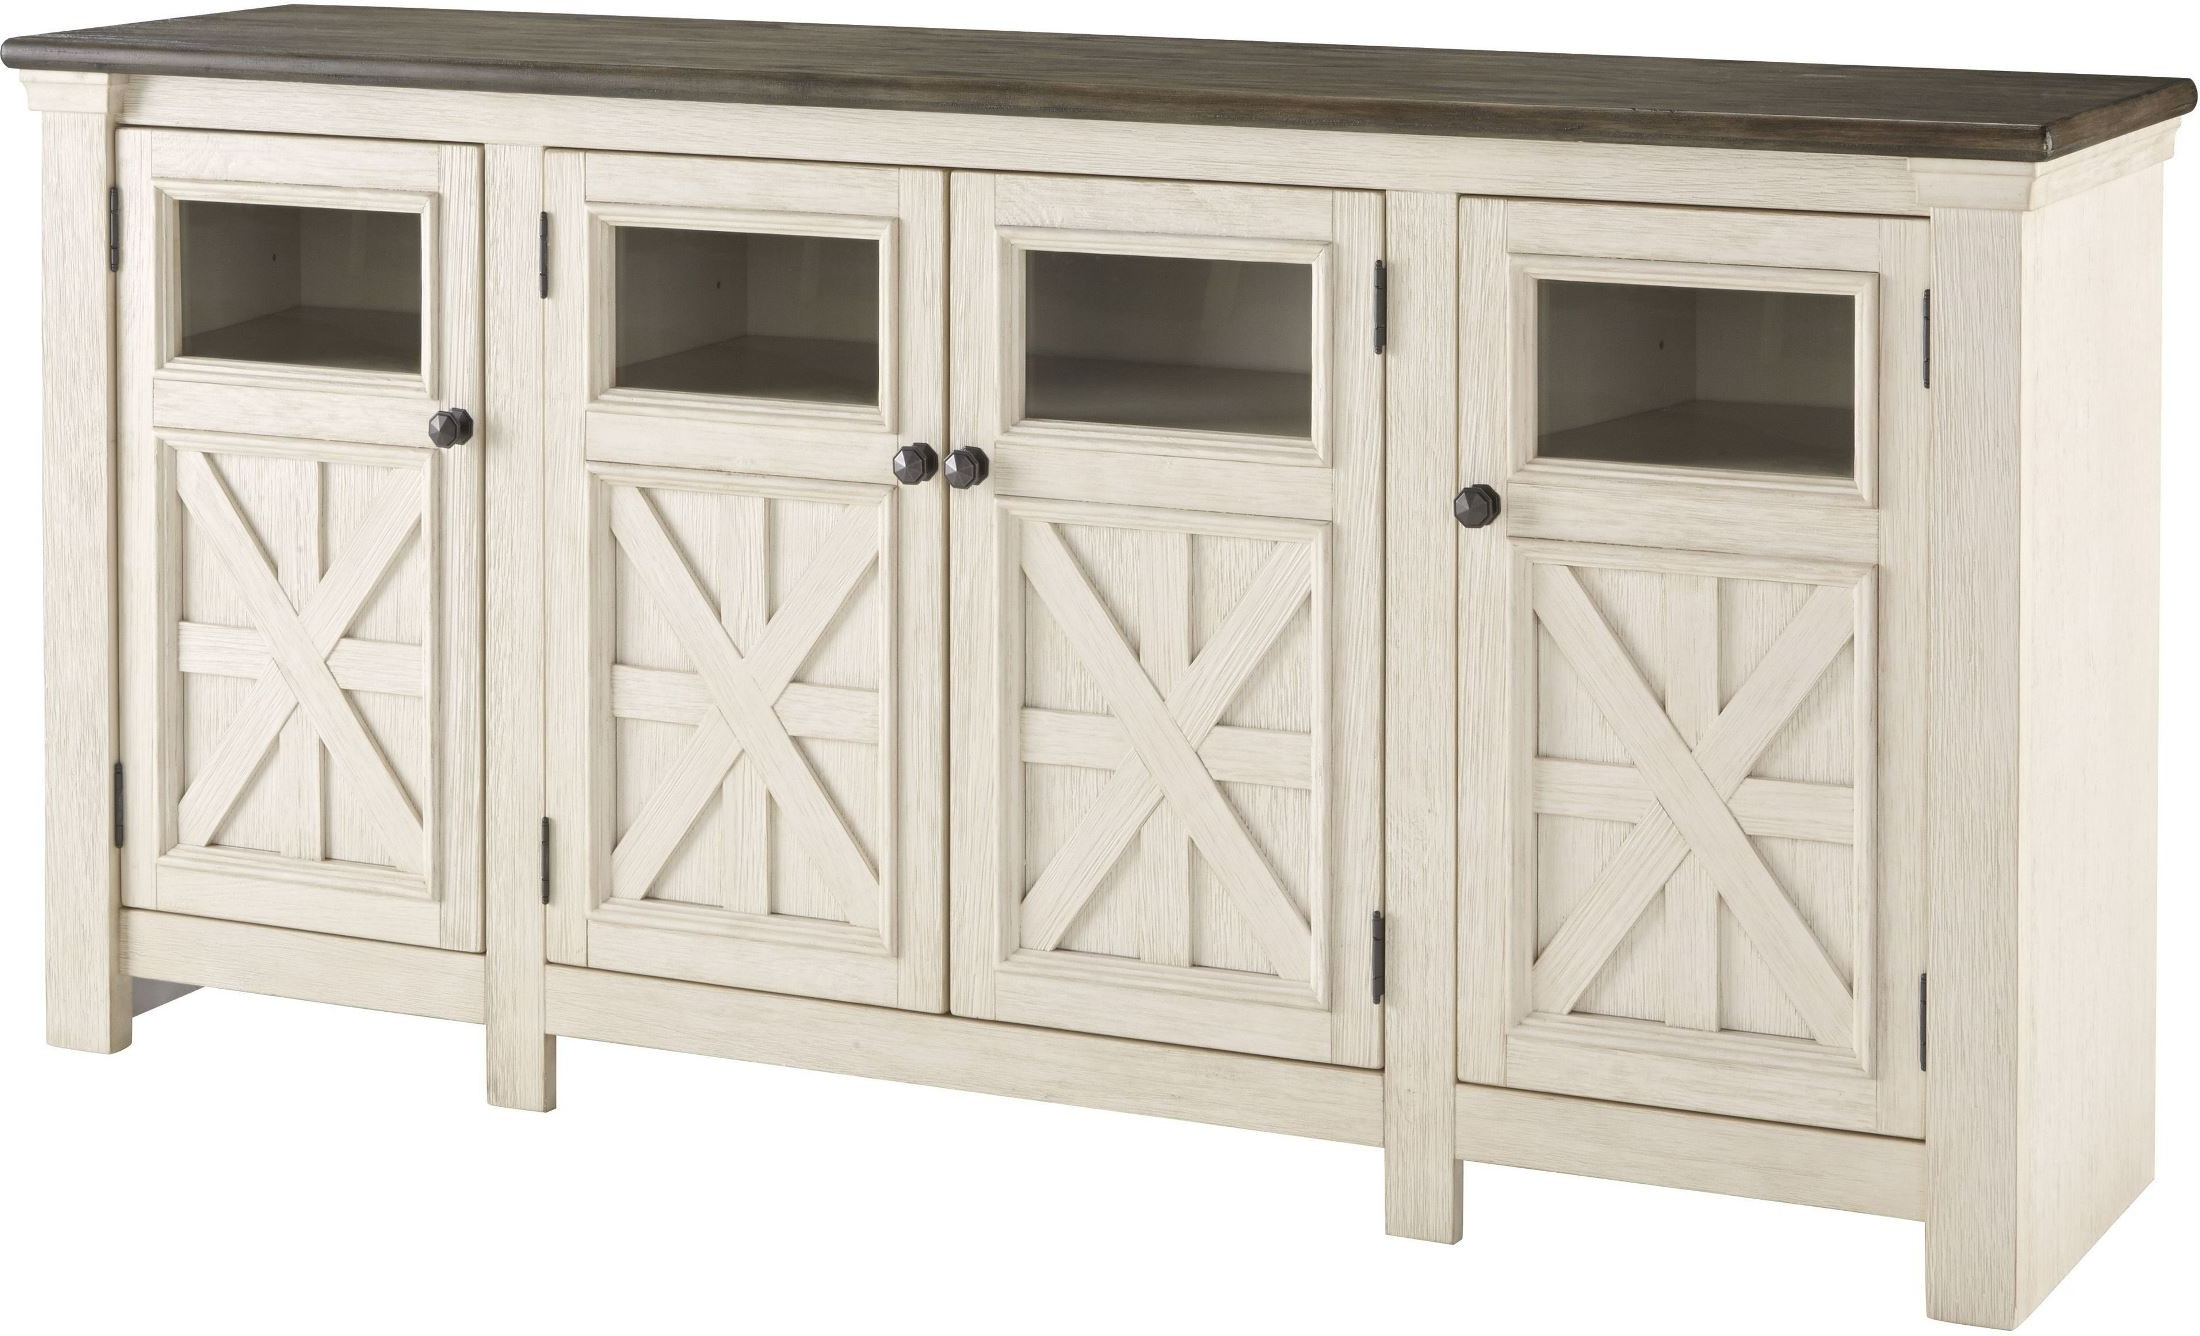 Bolanburg Weathered Gray Extra Large Tv Stand From Ashley   Coleman Inside Vista 60 Inch Tv Stands (View 17 of 20)